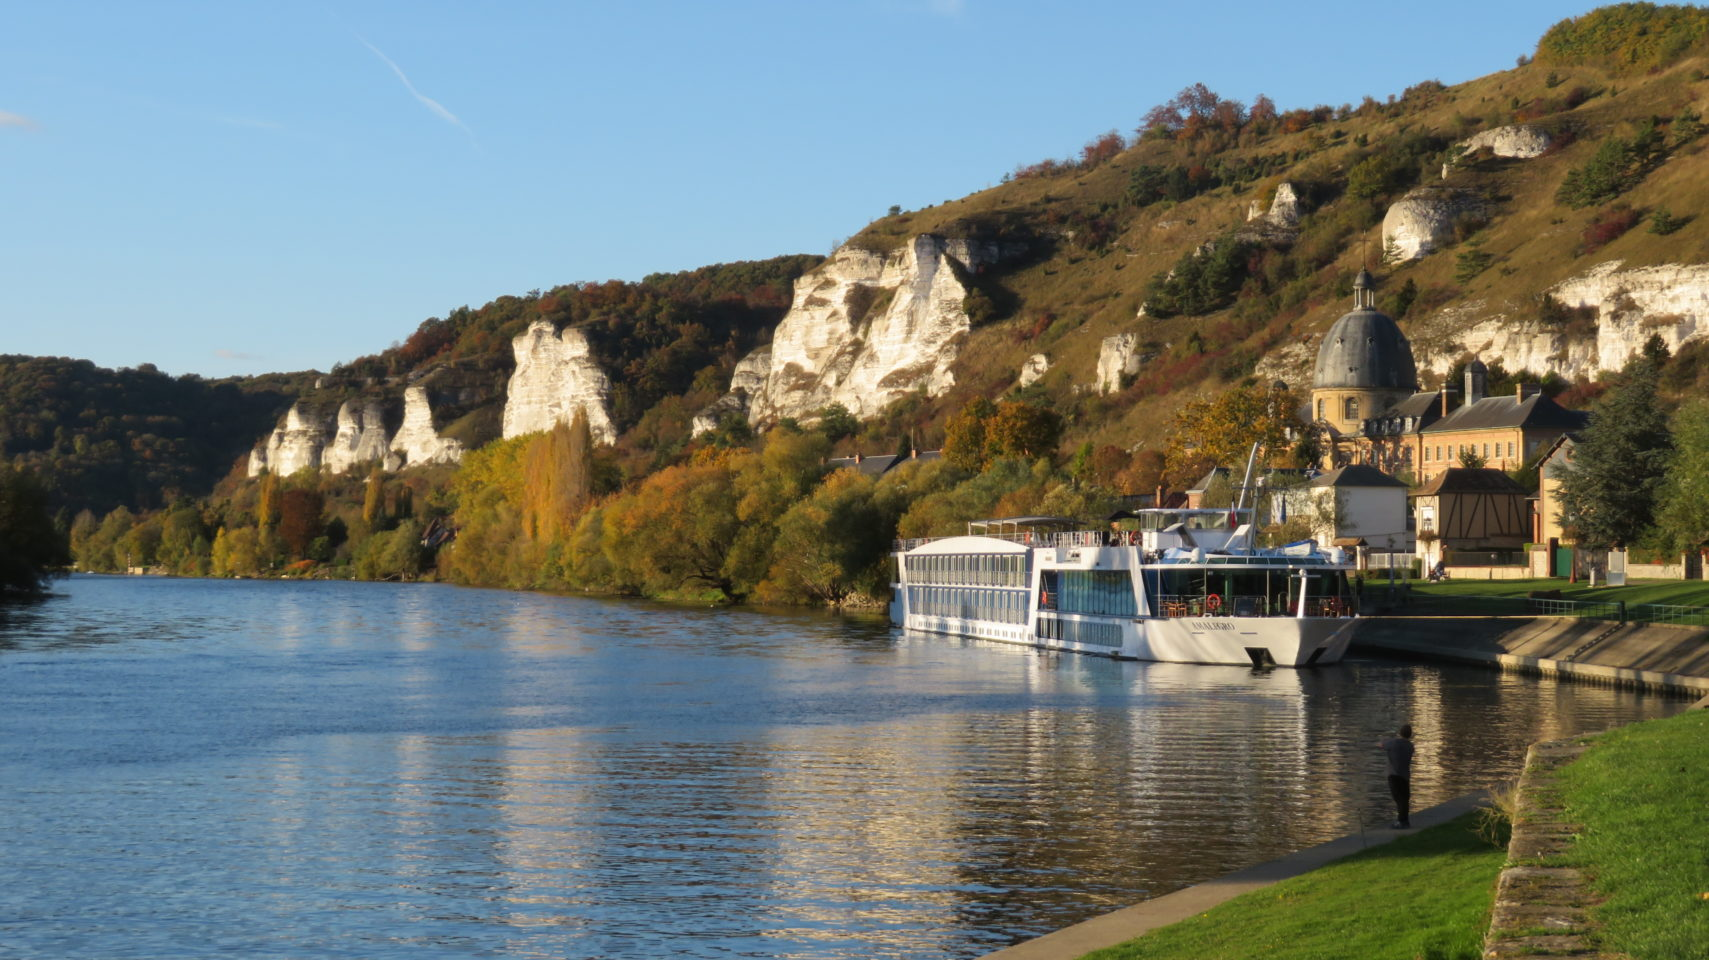 AMALegro docked along the beautiful Seine River in Normandie, France (Paris and Normandie AMAWaterways Cruise)